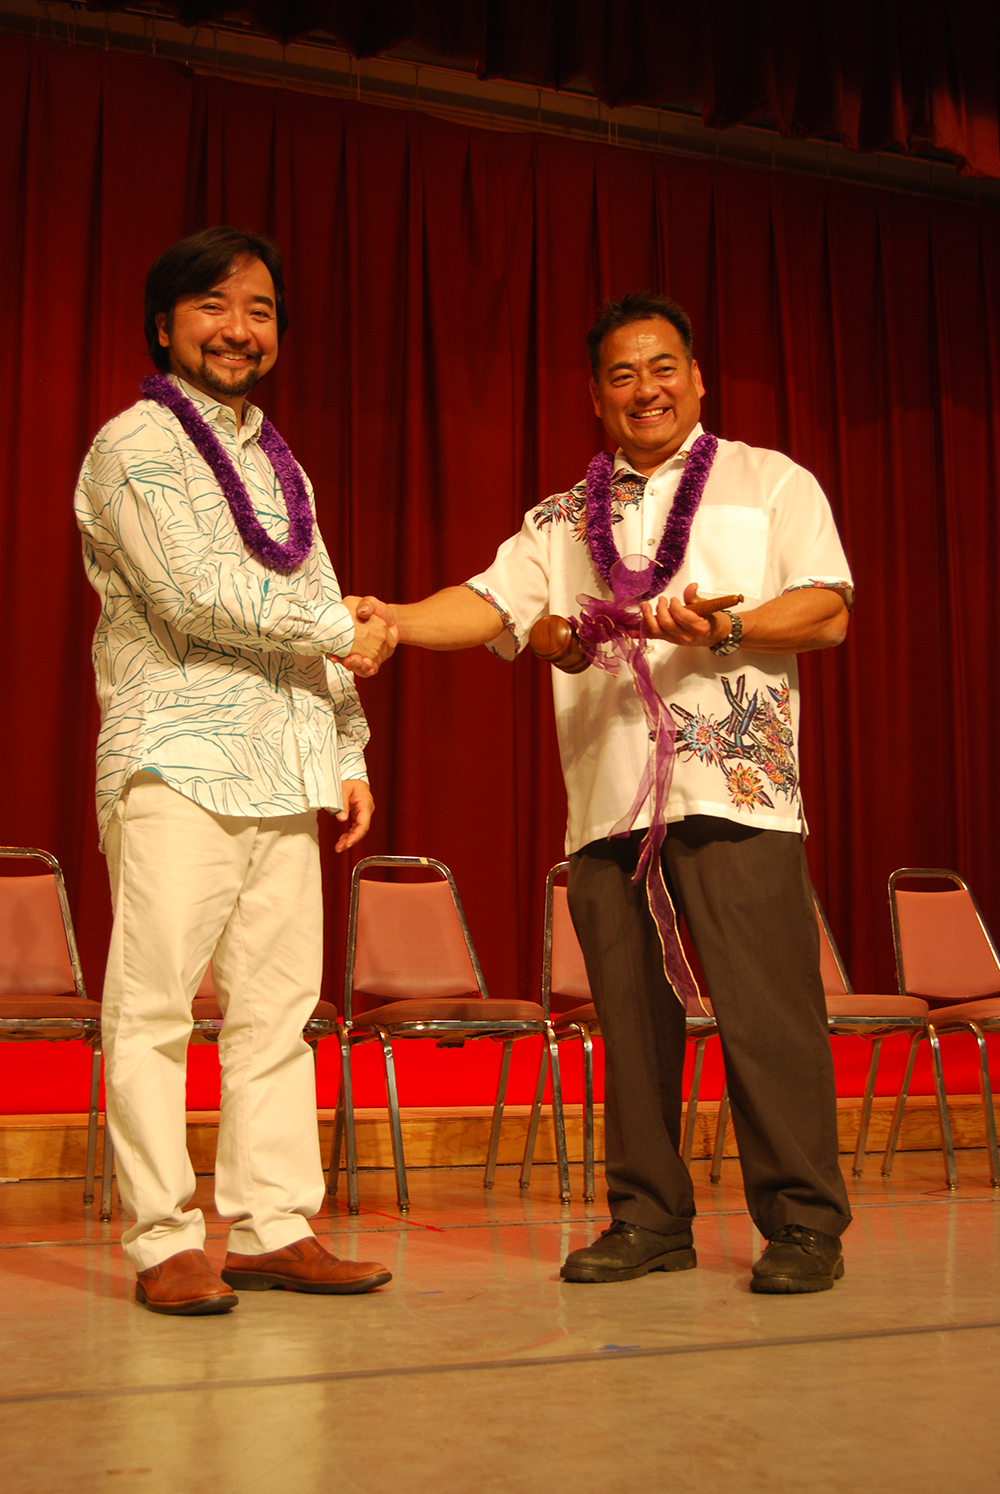 Outgoing president Mark Higa (left) congratulates his successor, Tom Yamamoto, after presenting him the president's gavel.